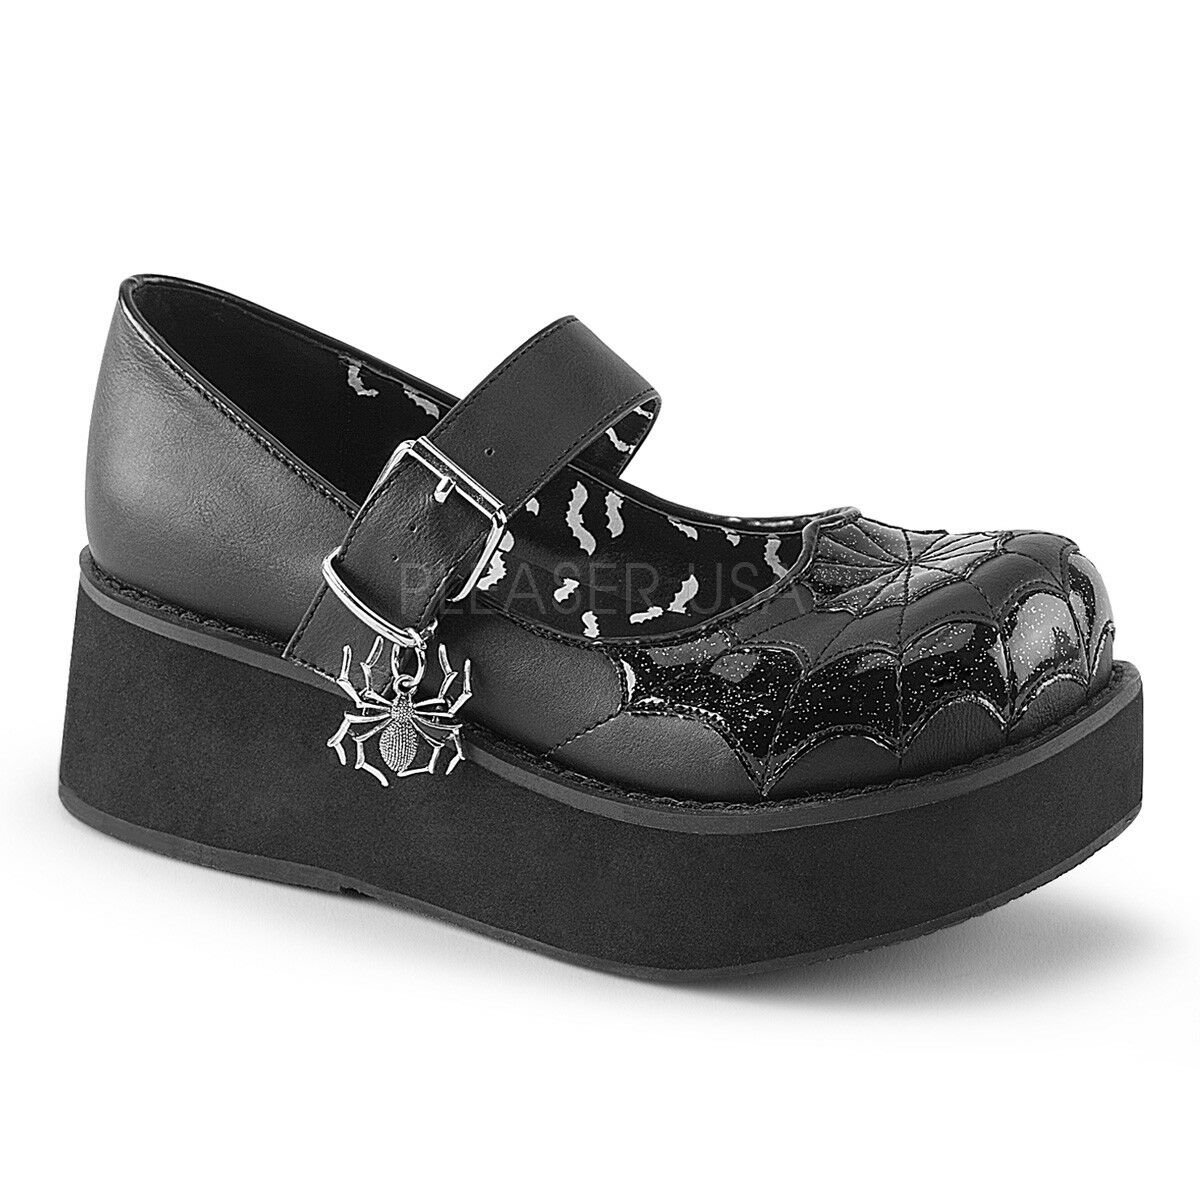 shoes women  Tacco Tacco Tacco  Plateau 5 black Pleaser SPRITE-05 d92be5